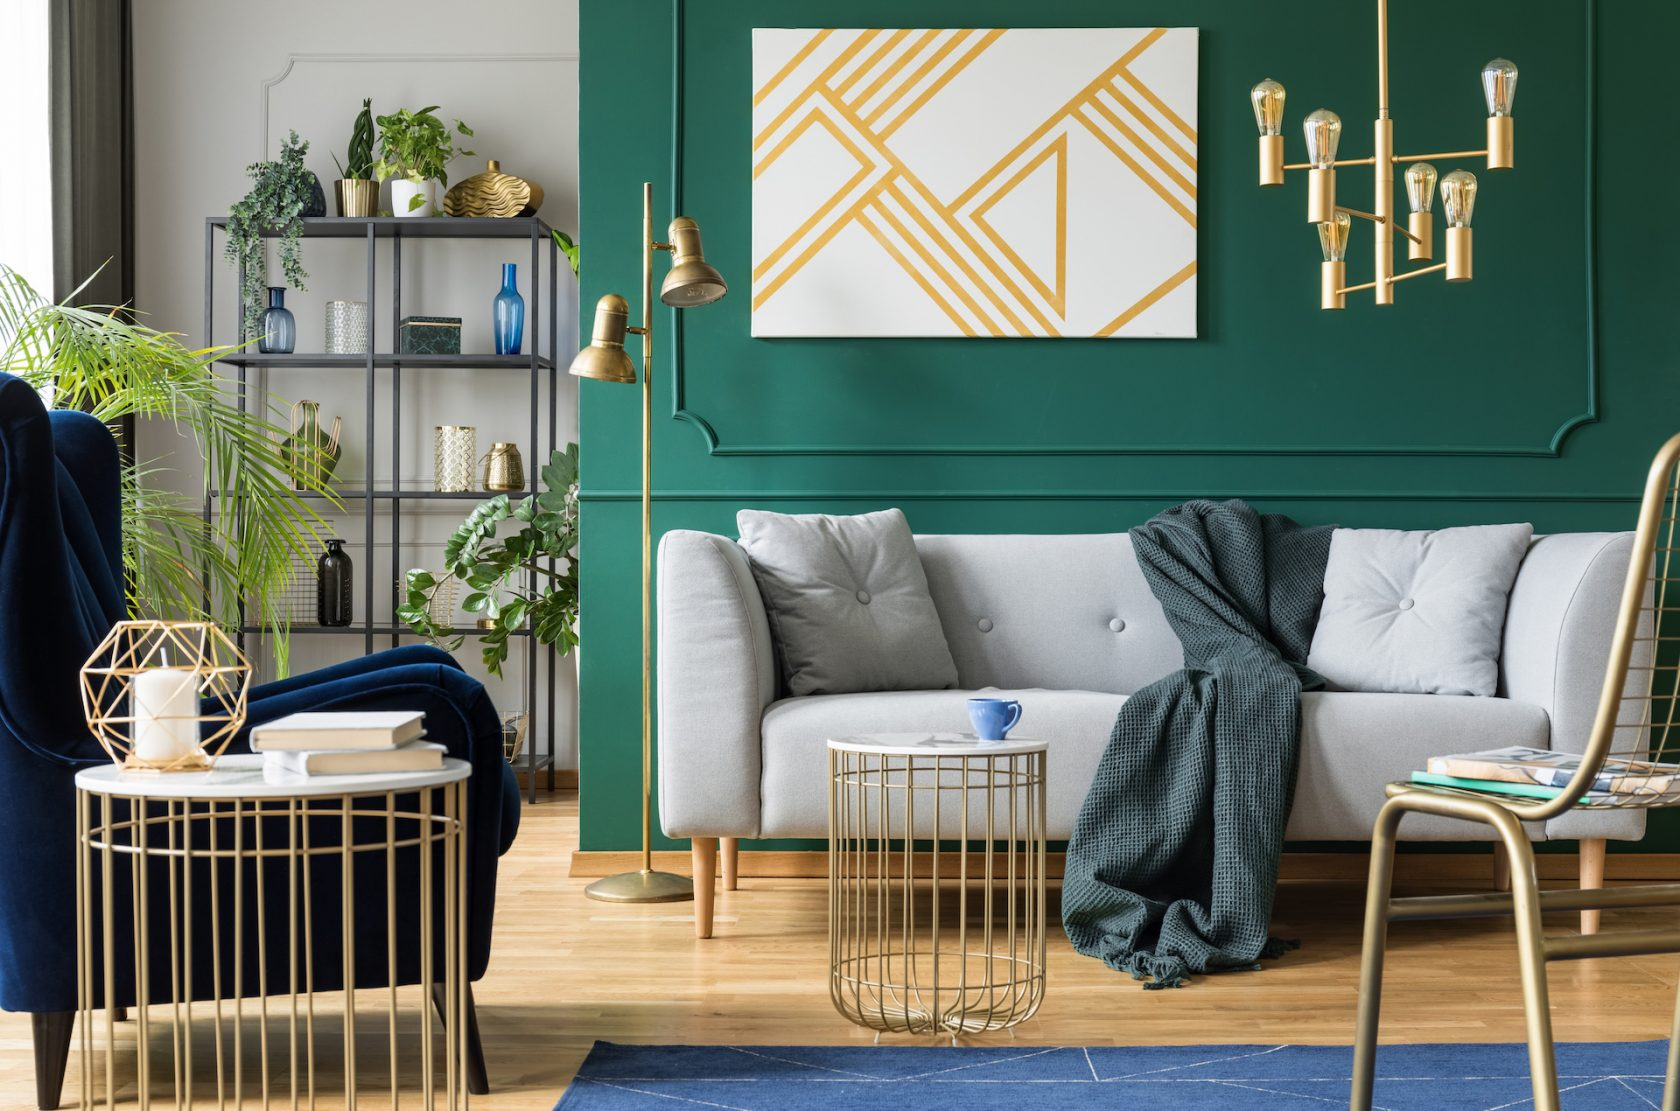 Luxury home trends in 2019 | Team Logue